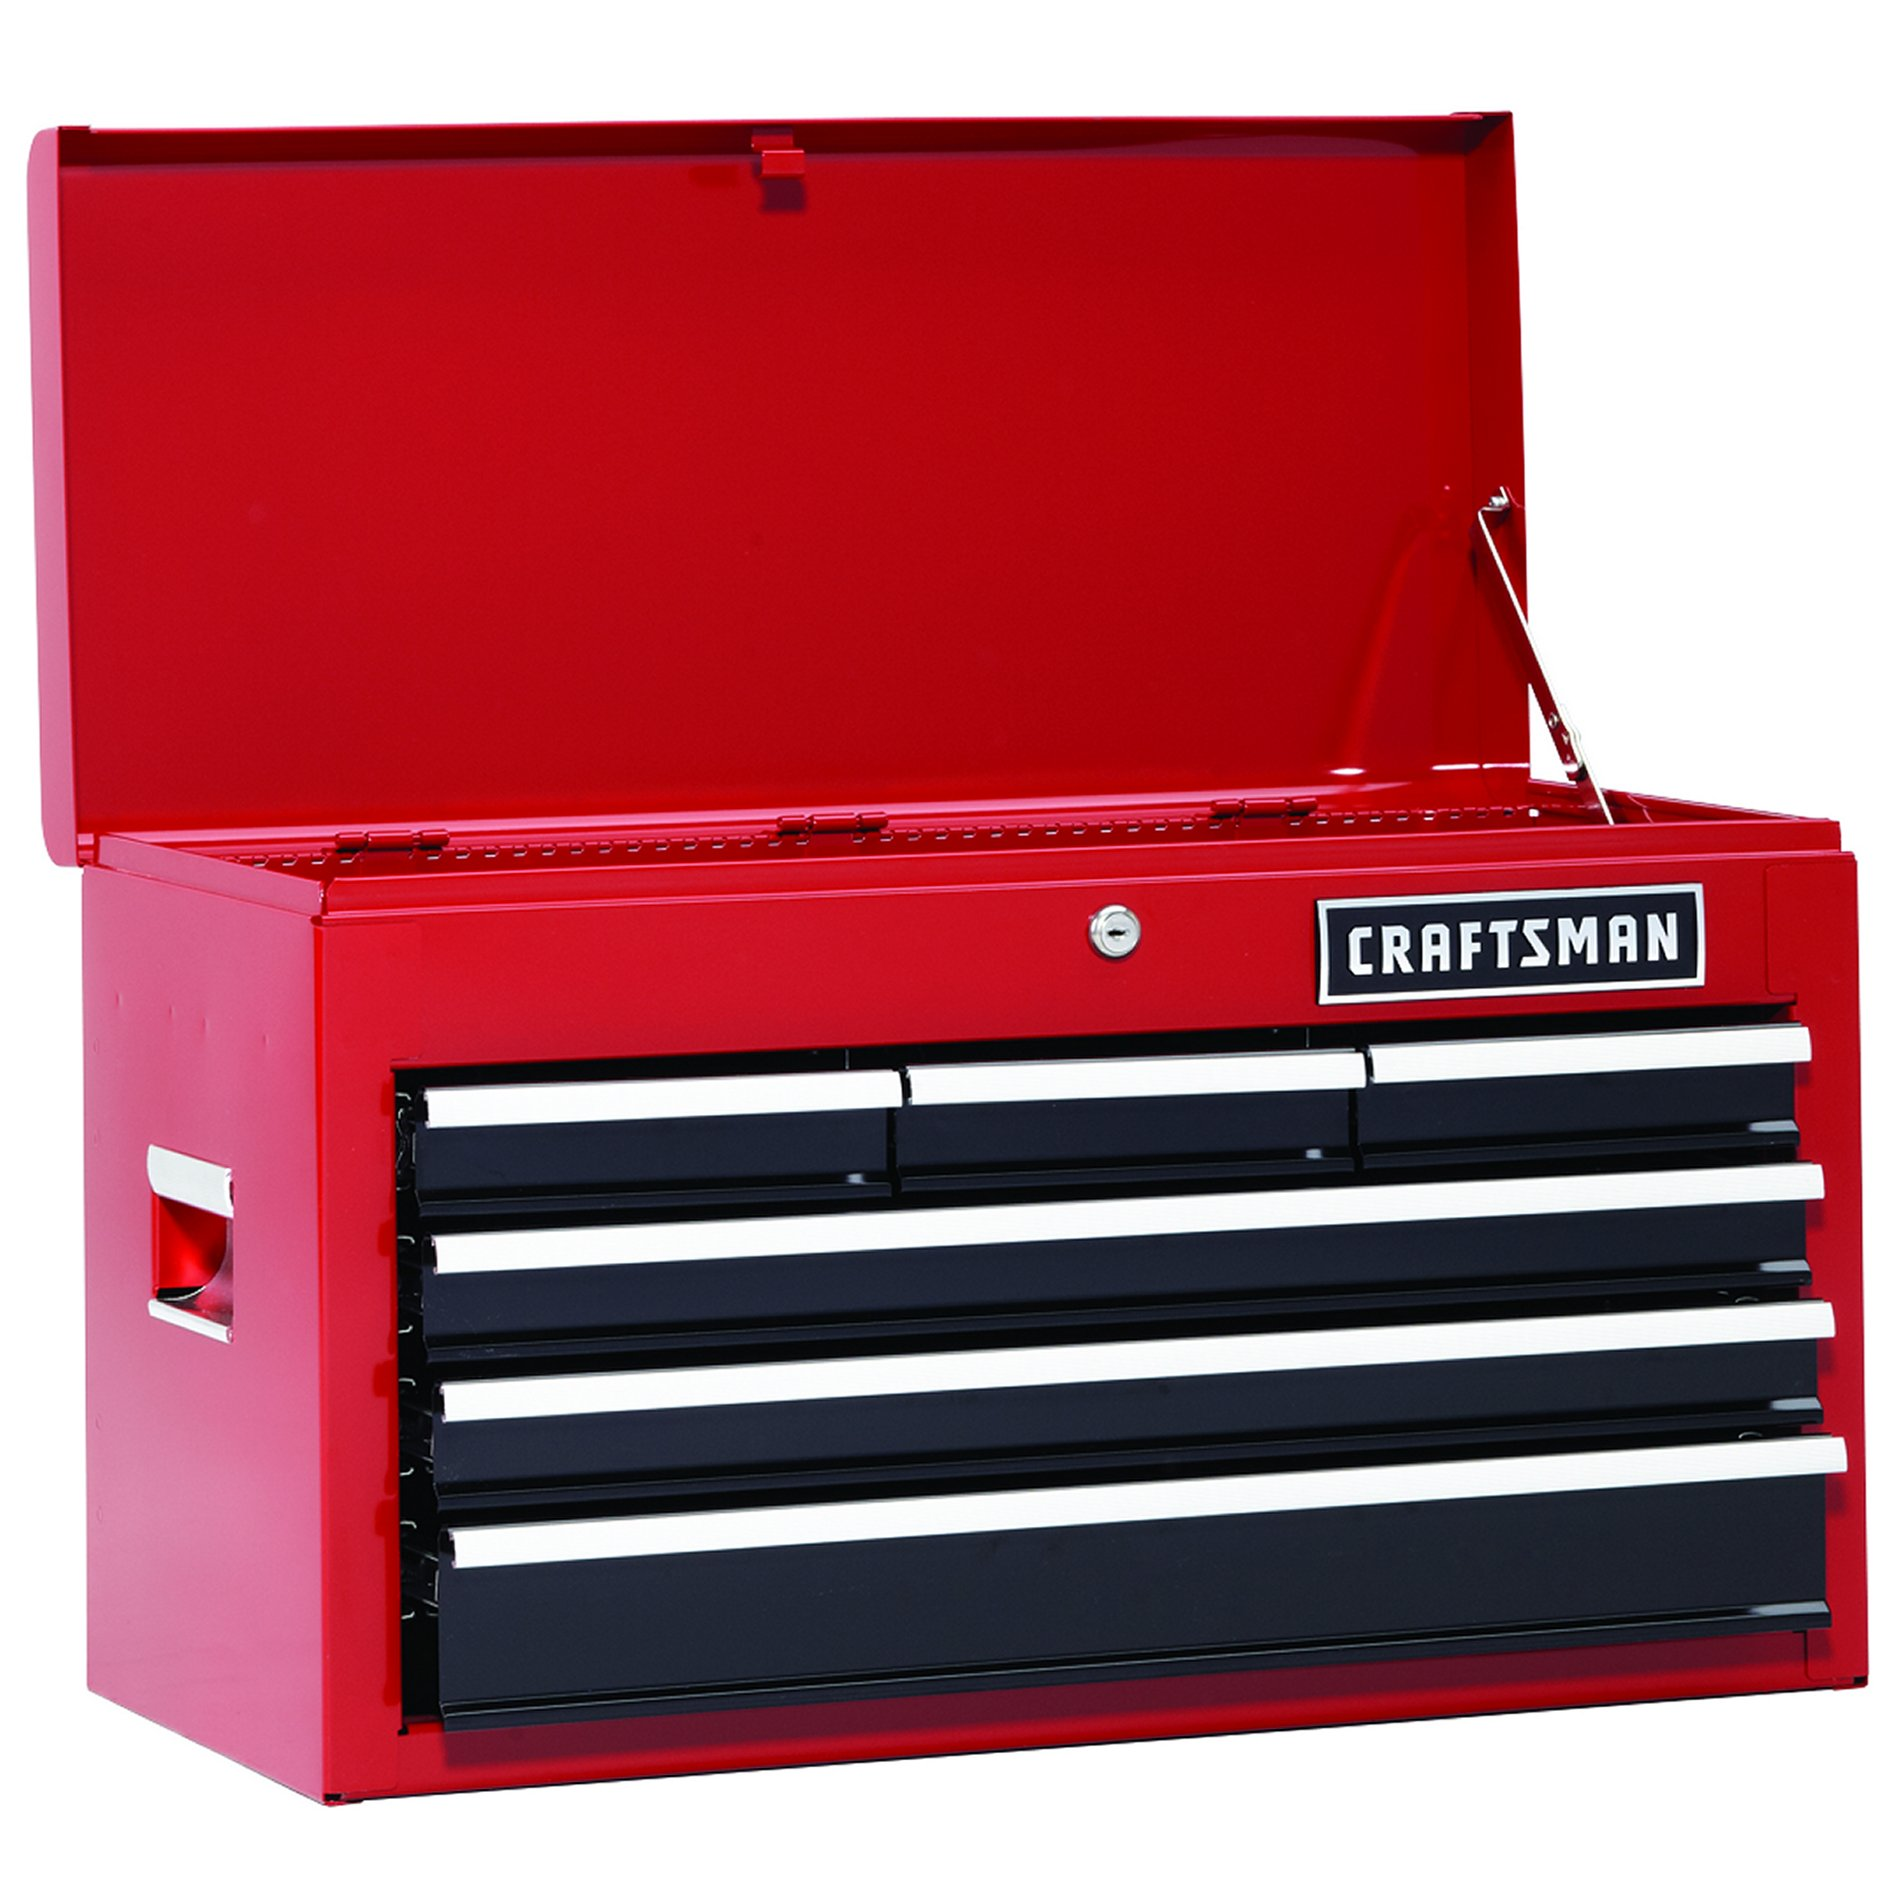 "Craftsman 26"""" 6-Drawer Heavy-Duty Top Chest - Red"